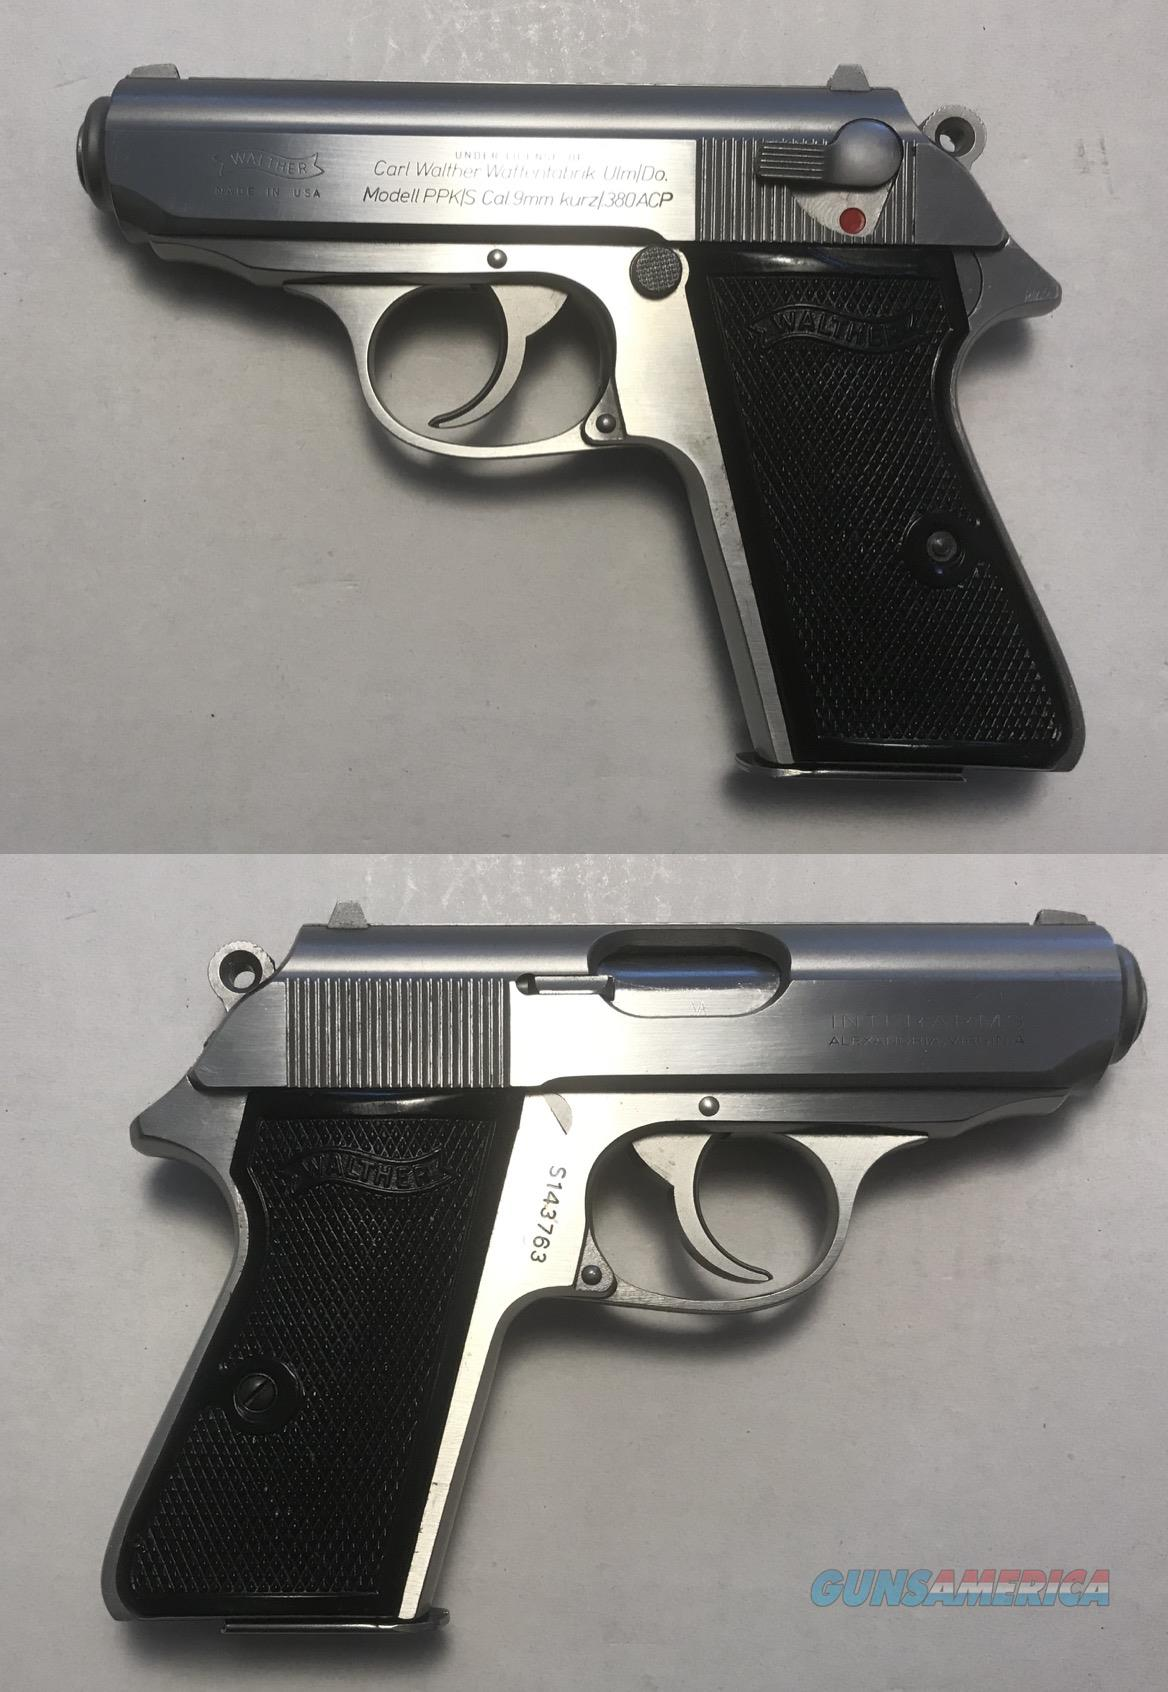 Walther/Interarms Model PPK/S Stainless .380  Guns > Pistols > Walther Pistols > Post WWII > PPK Series